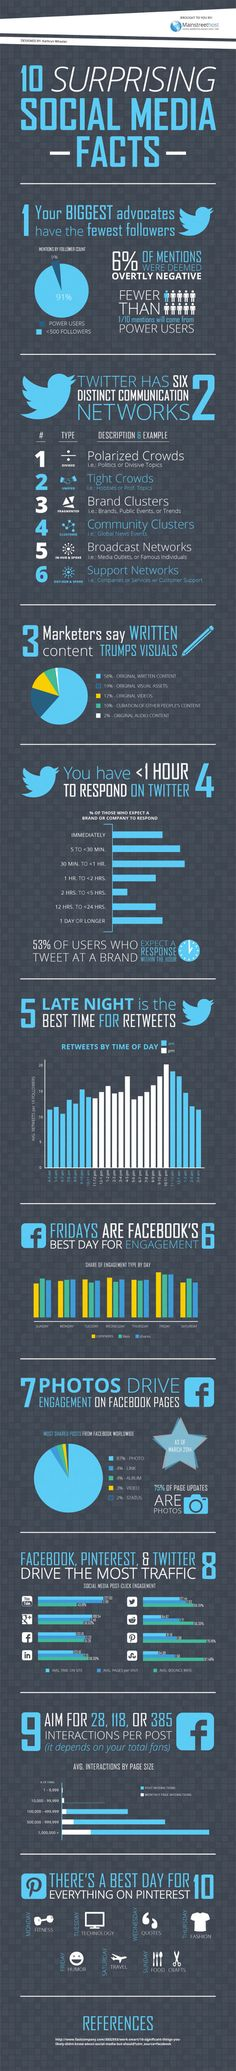 10 Surprising Things You Should Know About Social Media (Infographic)